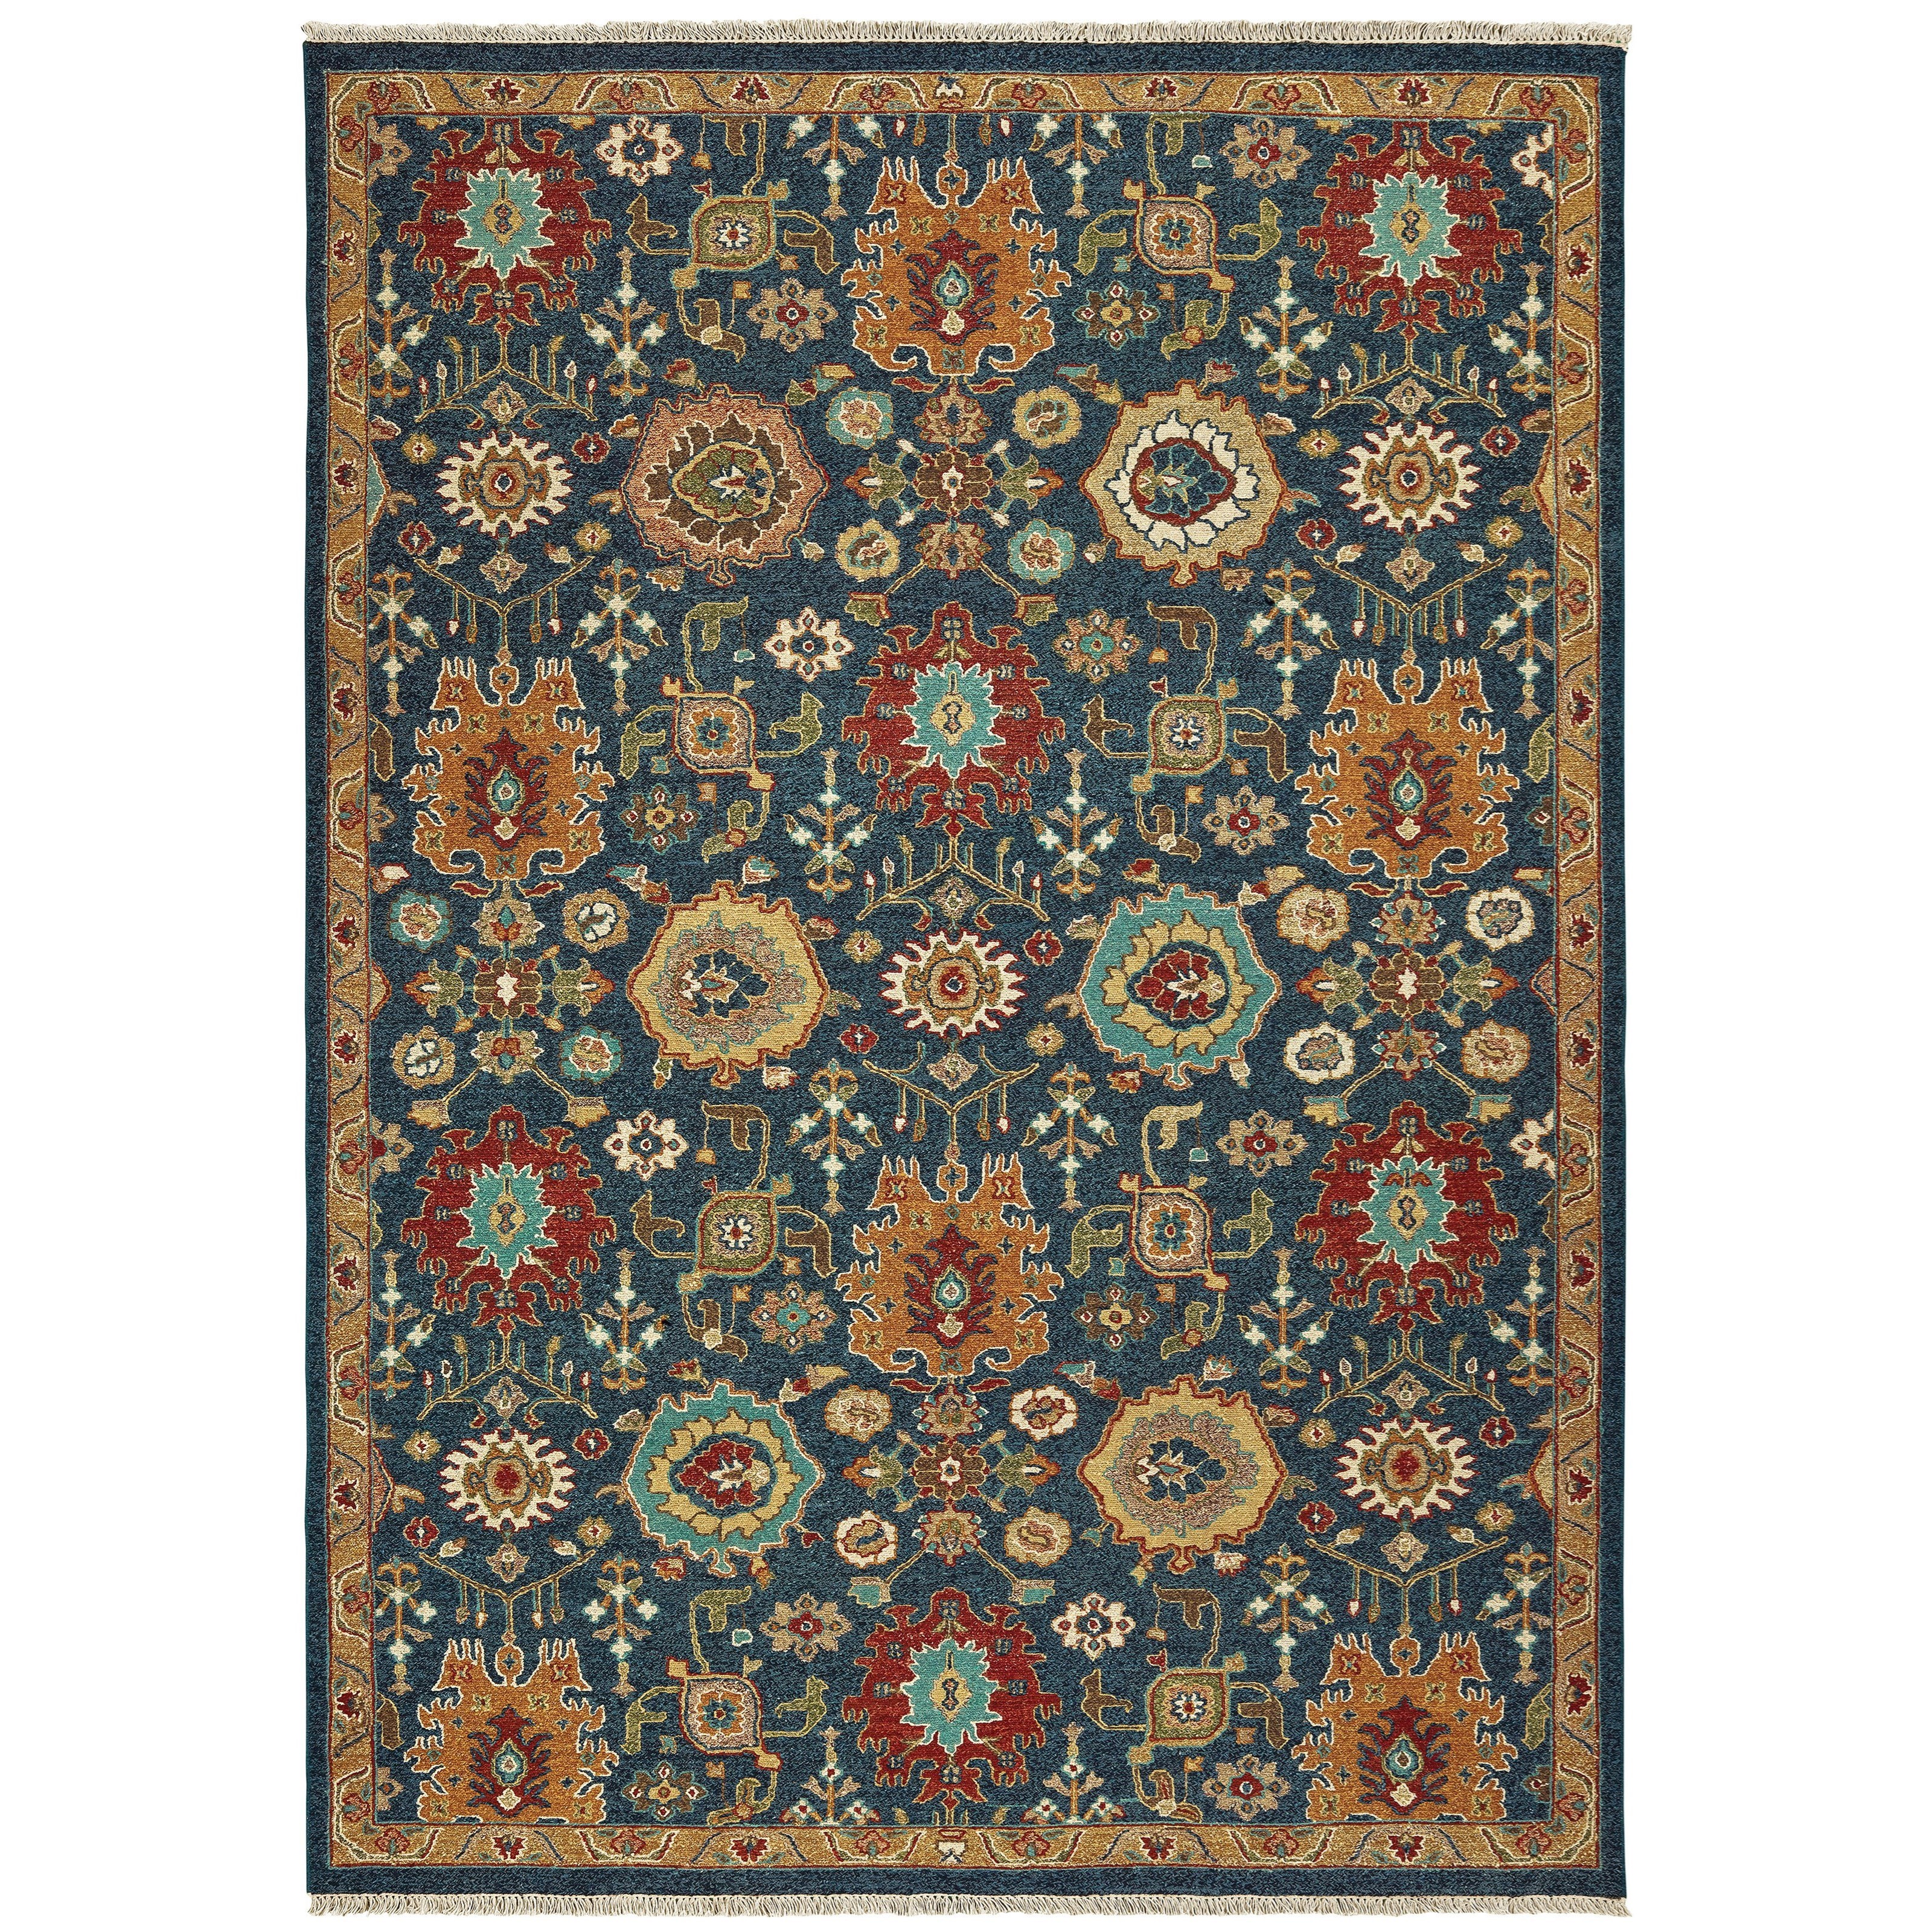 Angora 10' X 14' Rectangle Rug by Oriental Weavers at Darvin Furniture